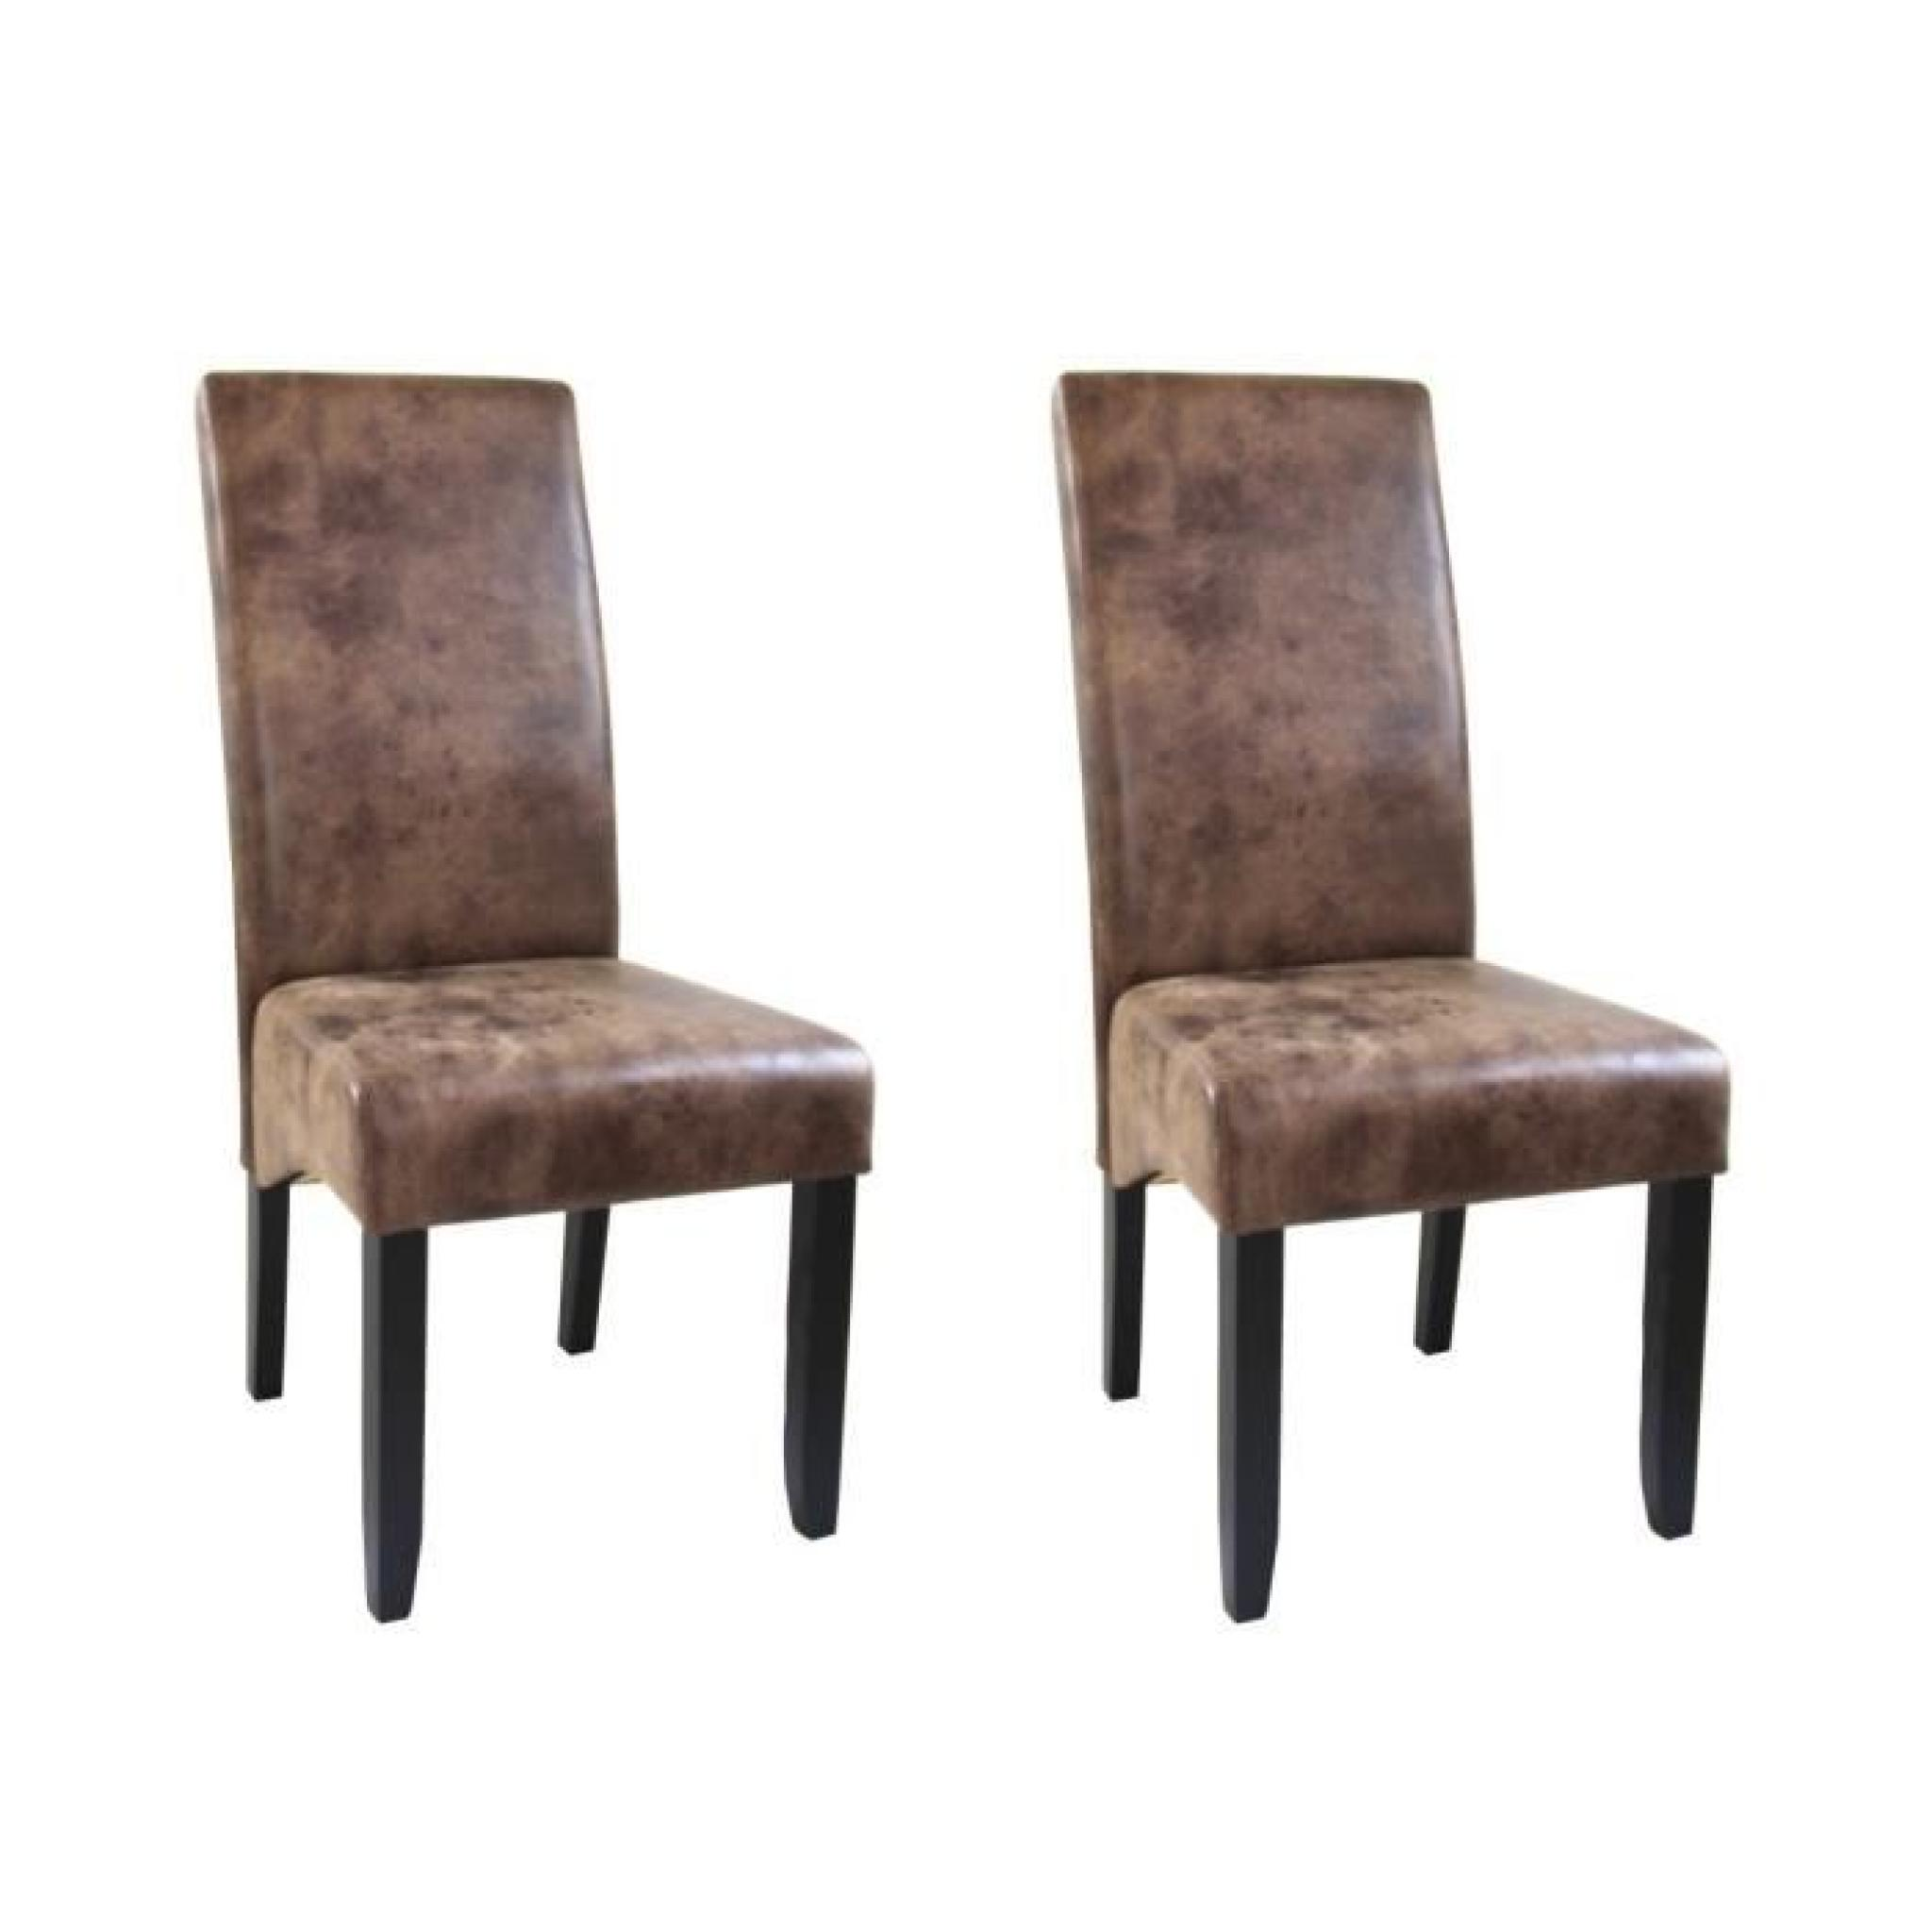 cuba lot de 2 chaises de salle manger style vintage. Black Bedroom Furniture Sets. Home Design Ideas